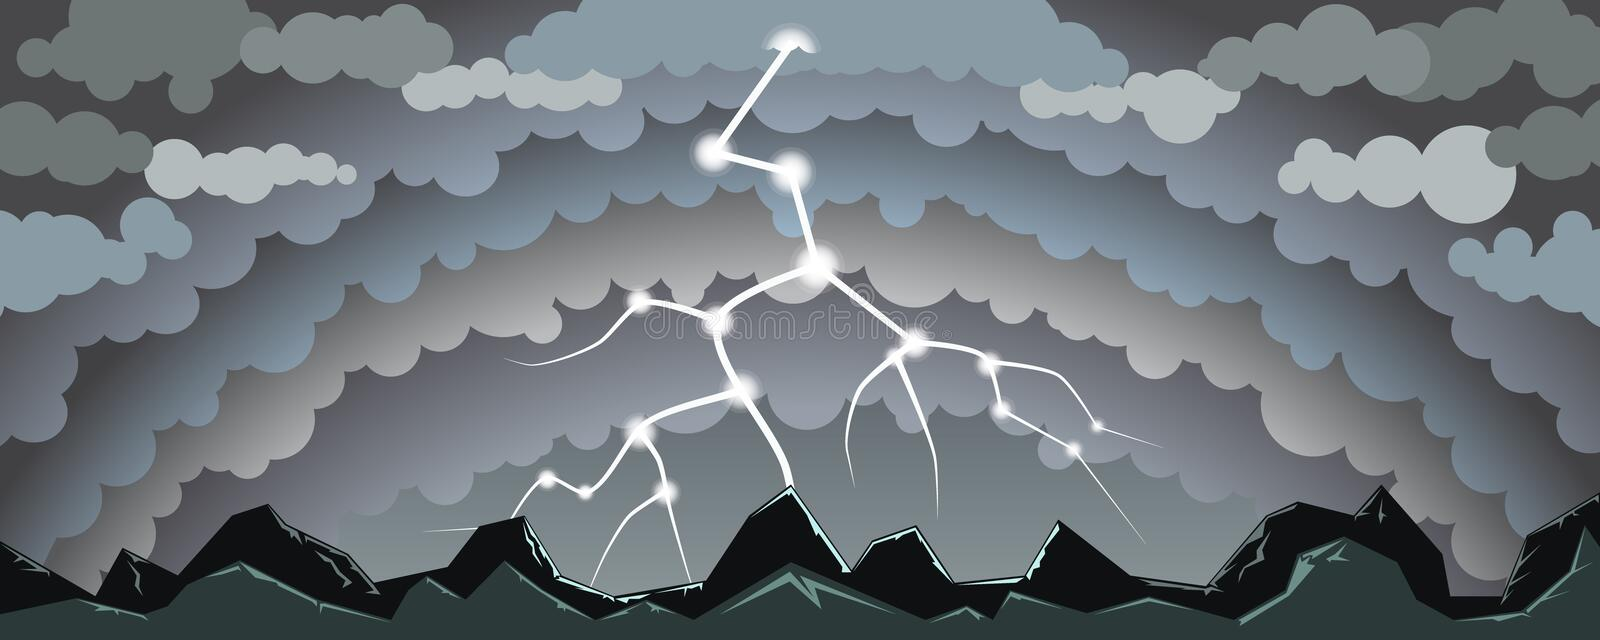 Landscape with lightning royalty free stock photos